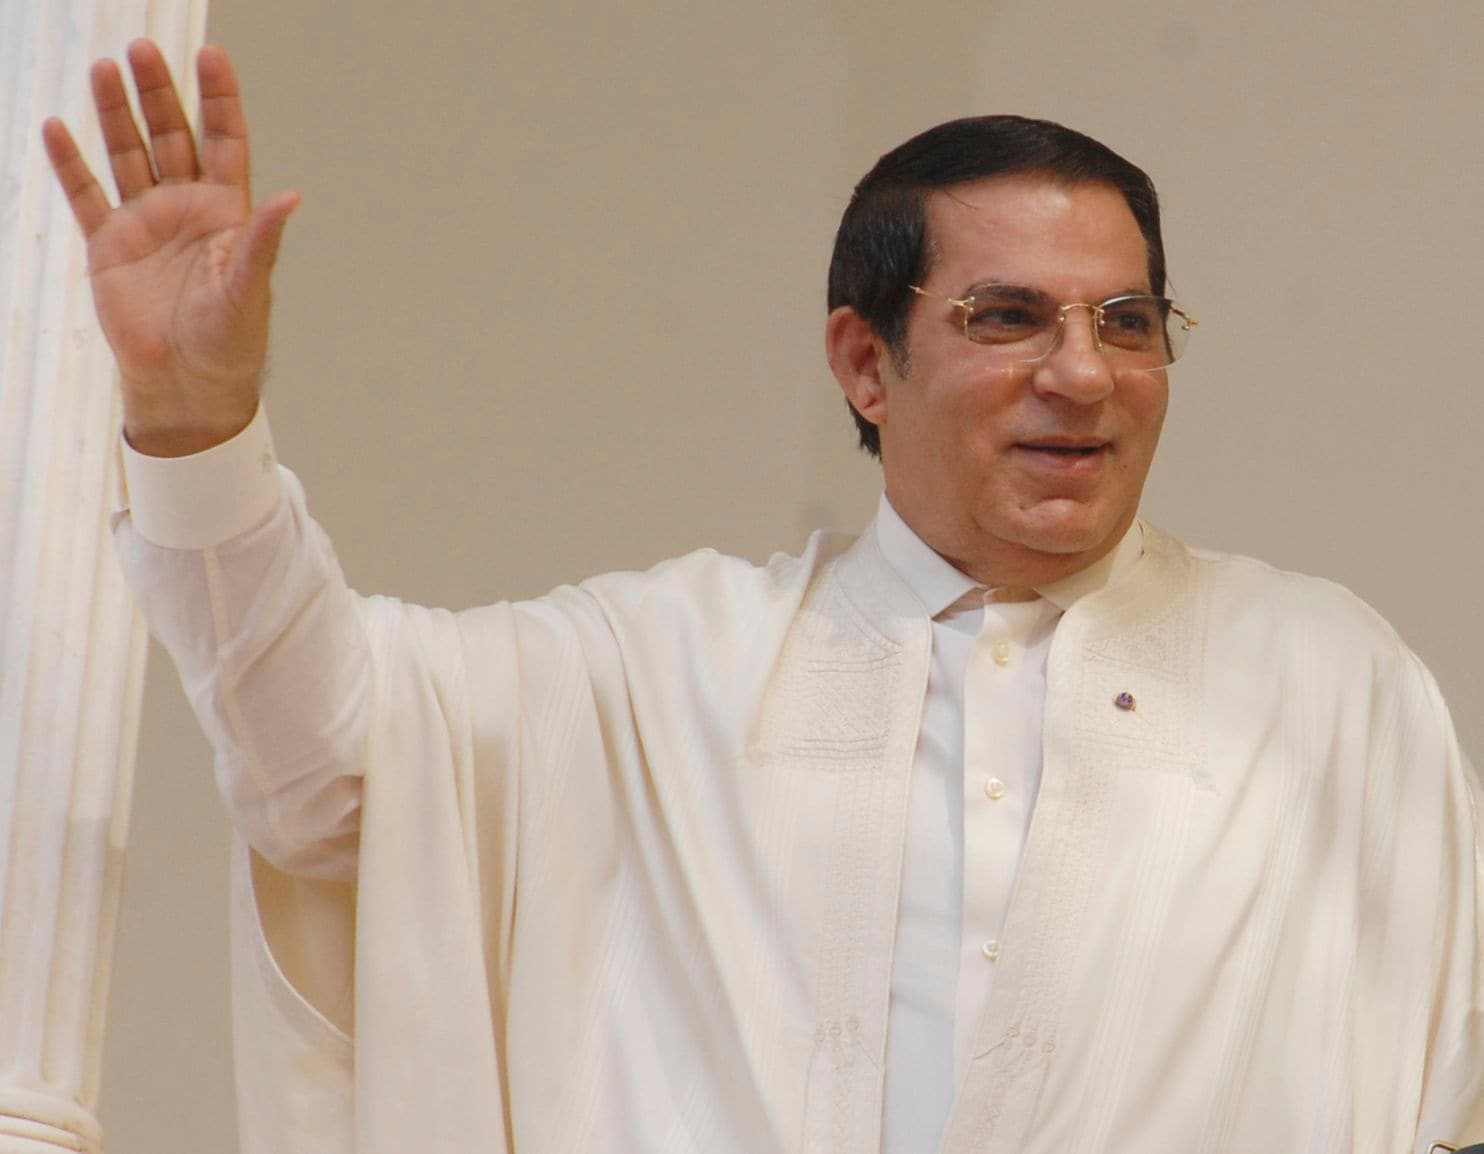 Ousted Tunisian Dictator Ben Ali Dies at Age 83